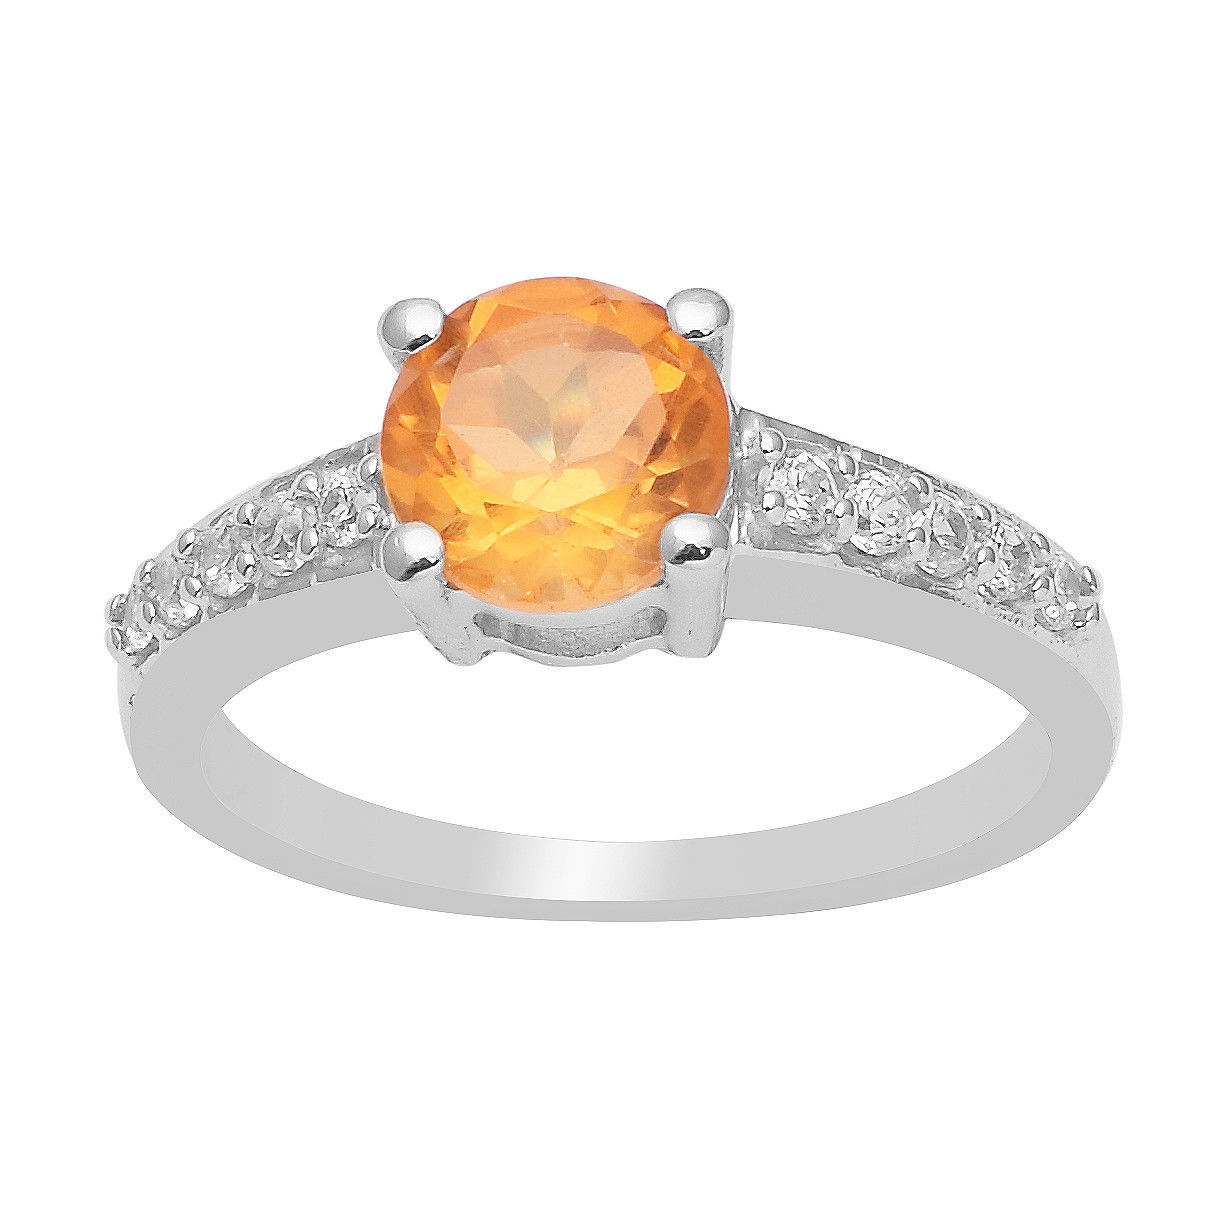 Citrine & Cubic Zirconia Gemstone 925 Silver Solitaire with Accents Wedding Ring